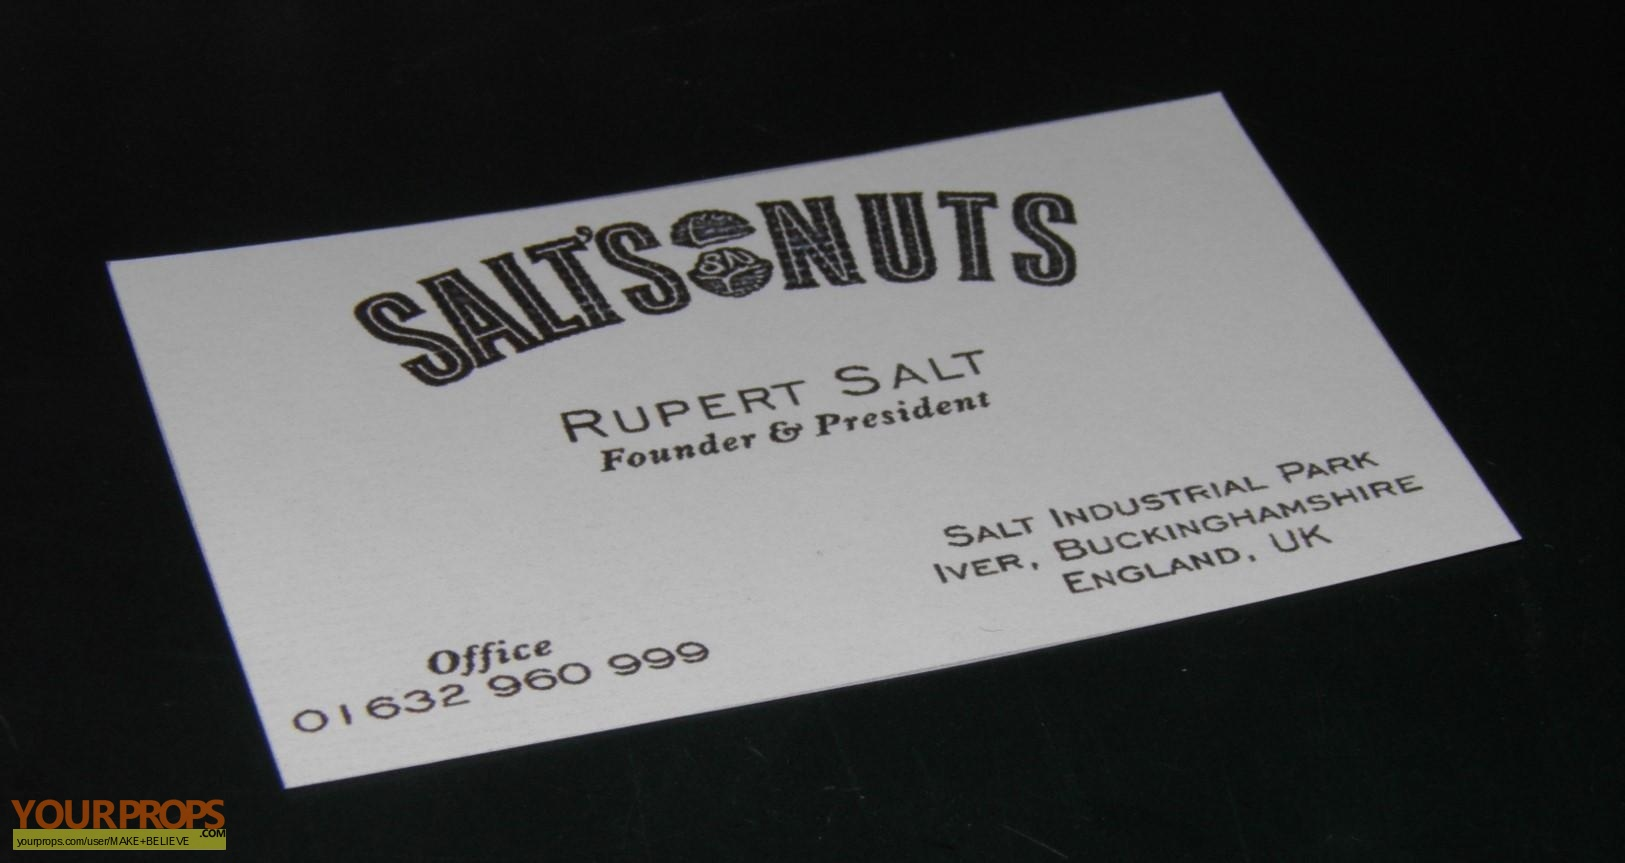 Charlie and the Chocolate Factory Rupert Salt business card replica ...